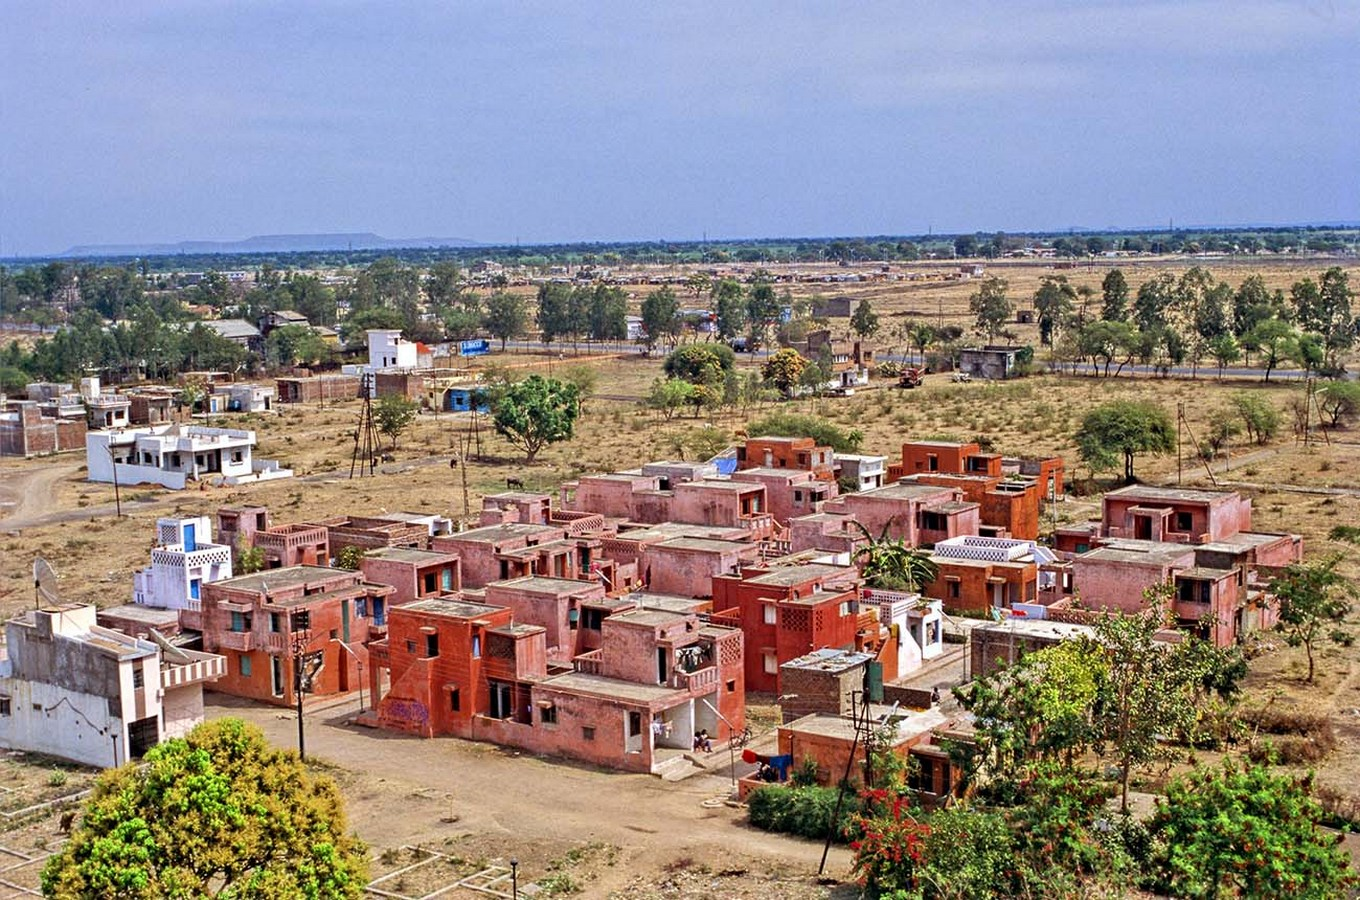 Aerial View of the site - Aranya Low Cost Housing